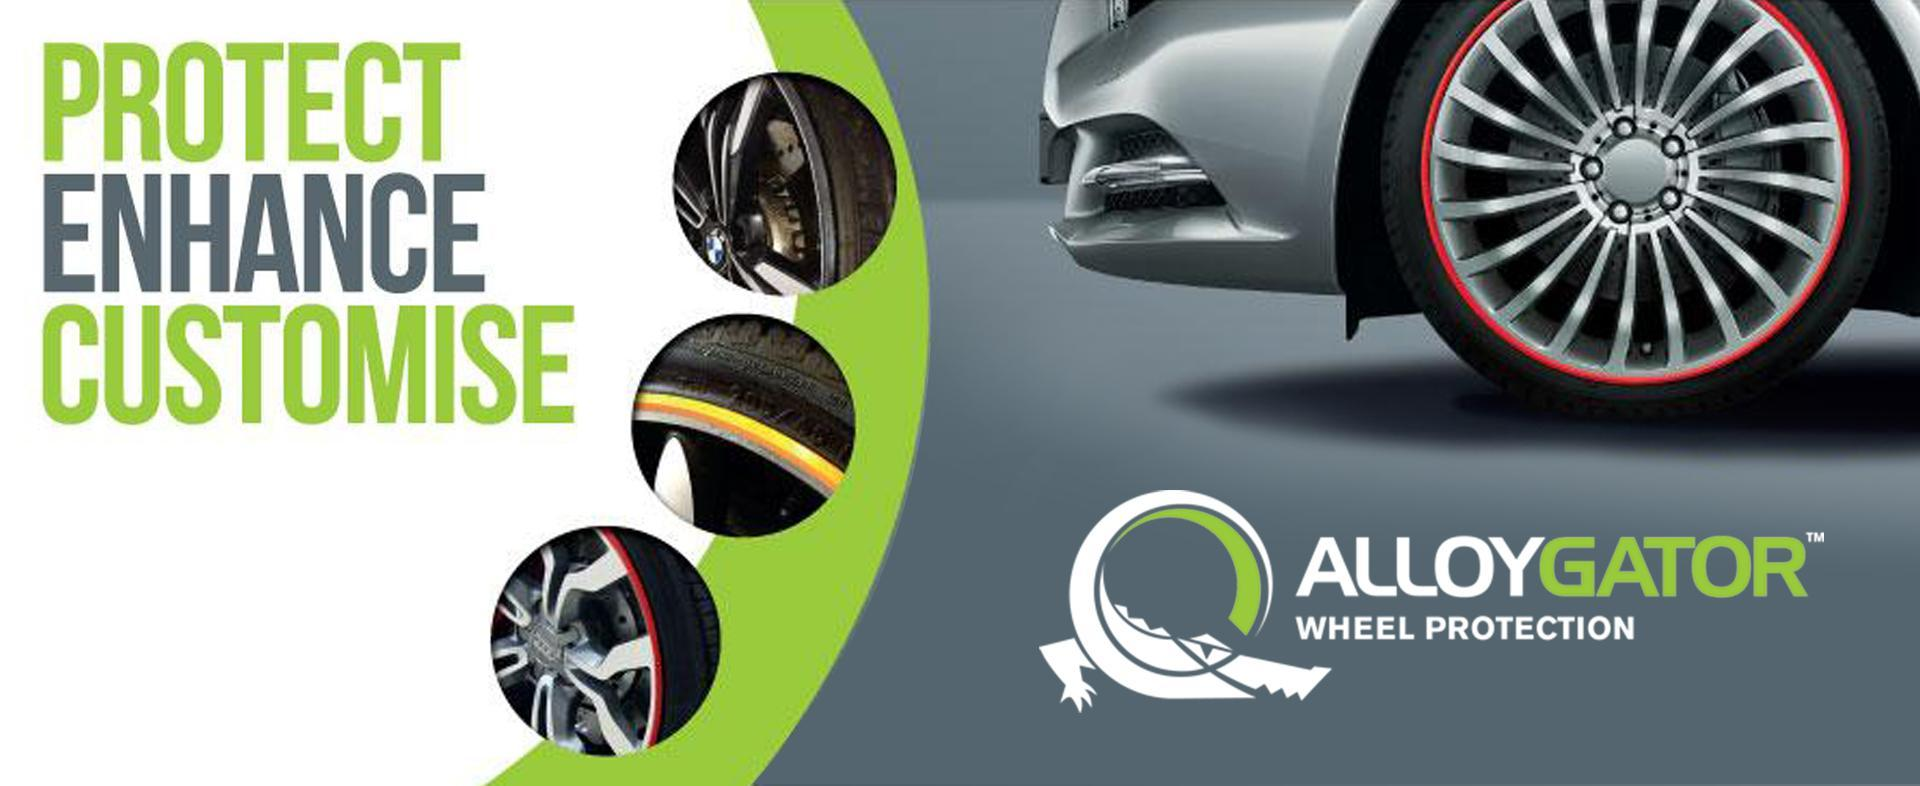 Protect Your Wheels with AlloyGator